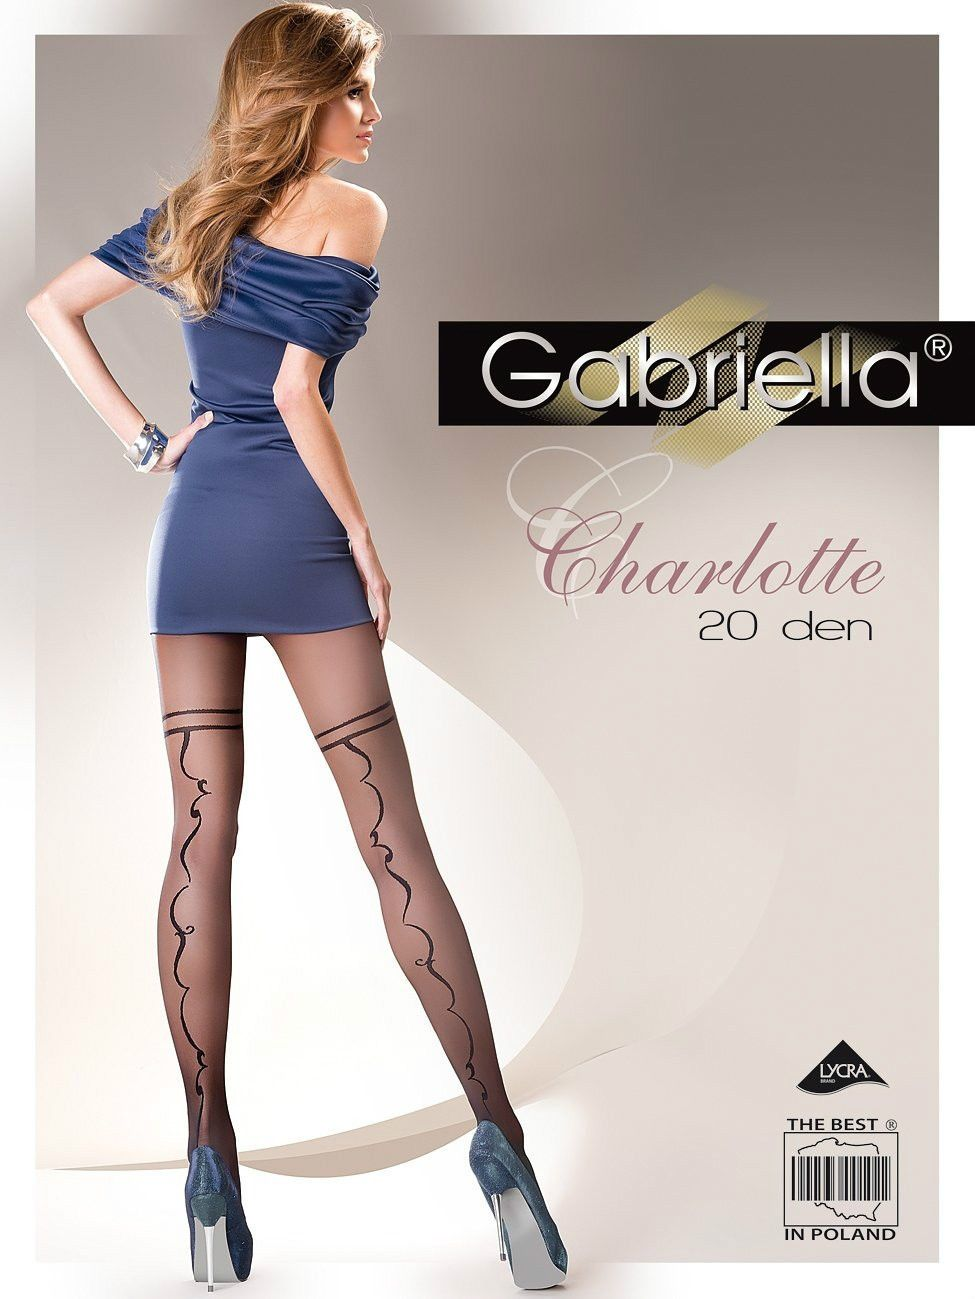 233899c01124b Fashion Back Seam Matte Pantyhose Tights Seamed Pattern Import Europe Size  s M L | eBay